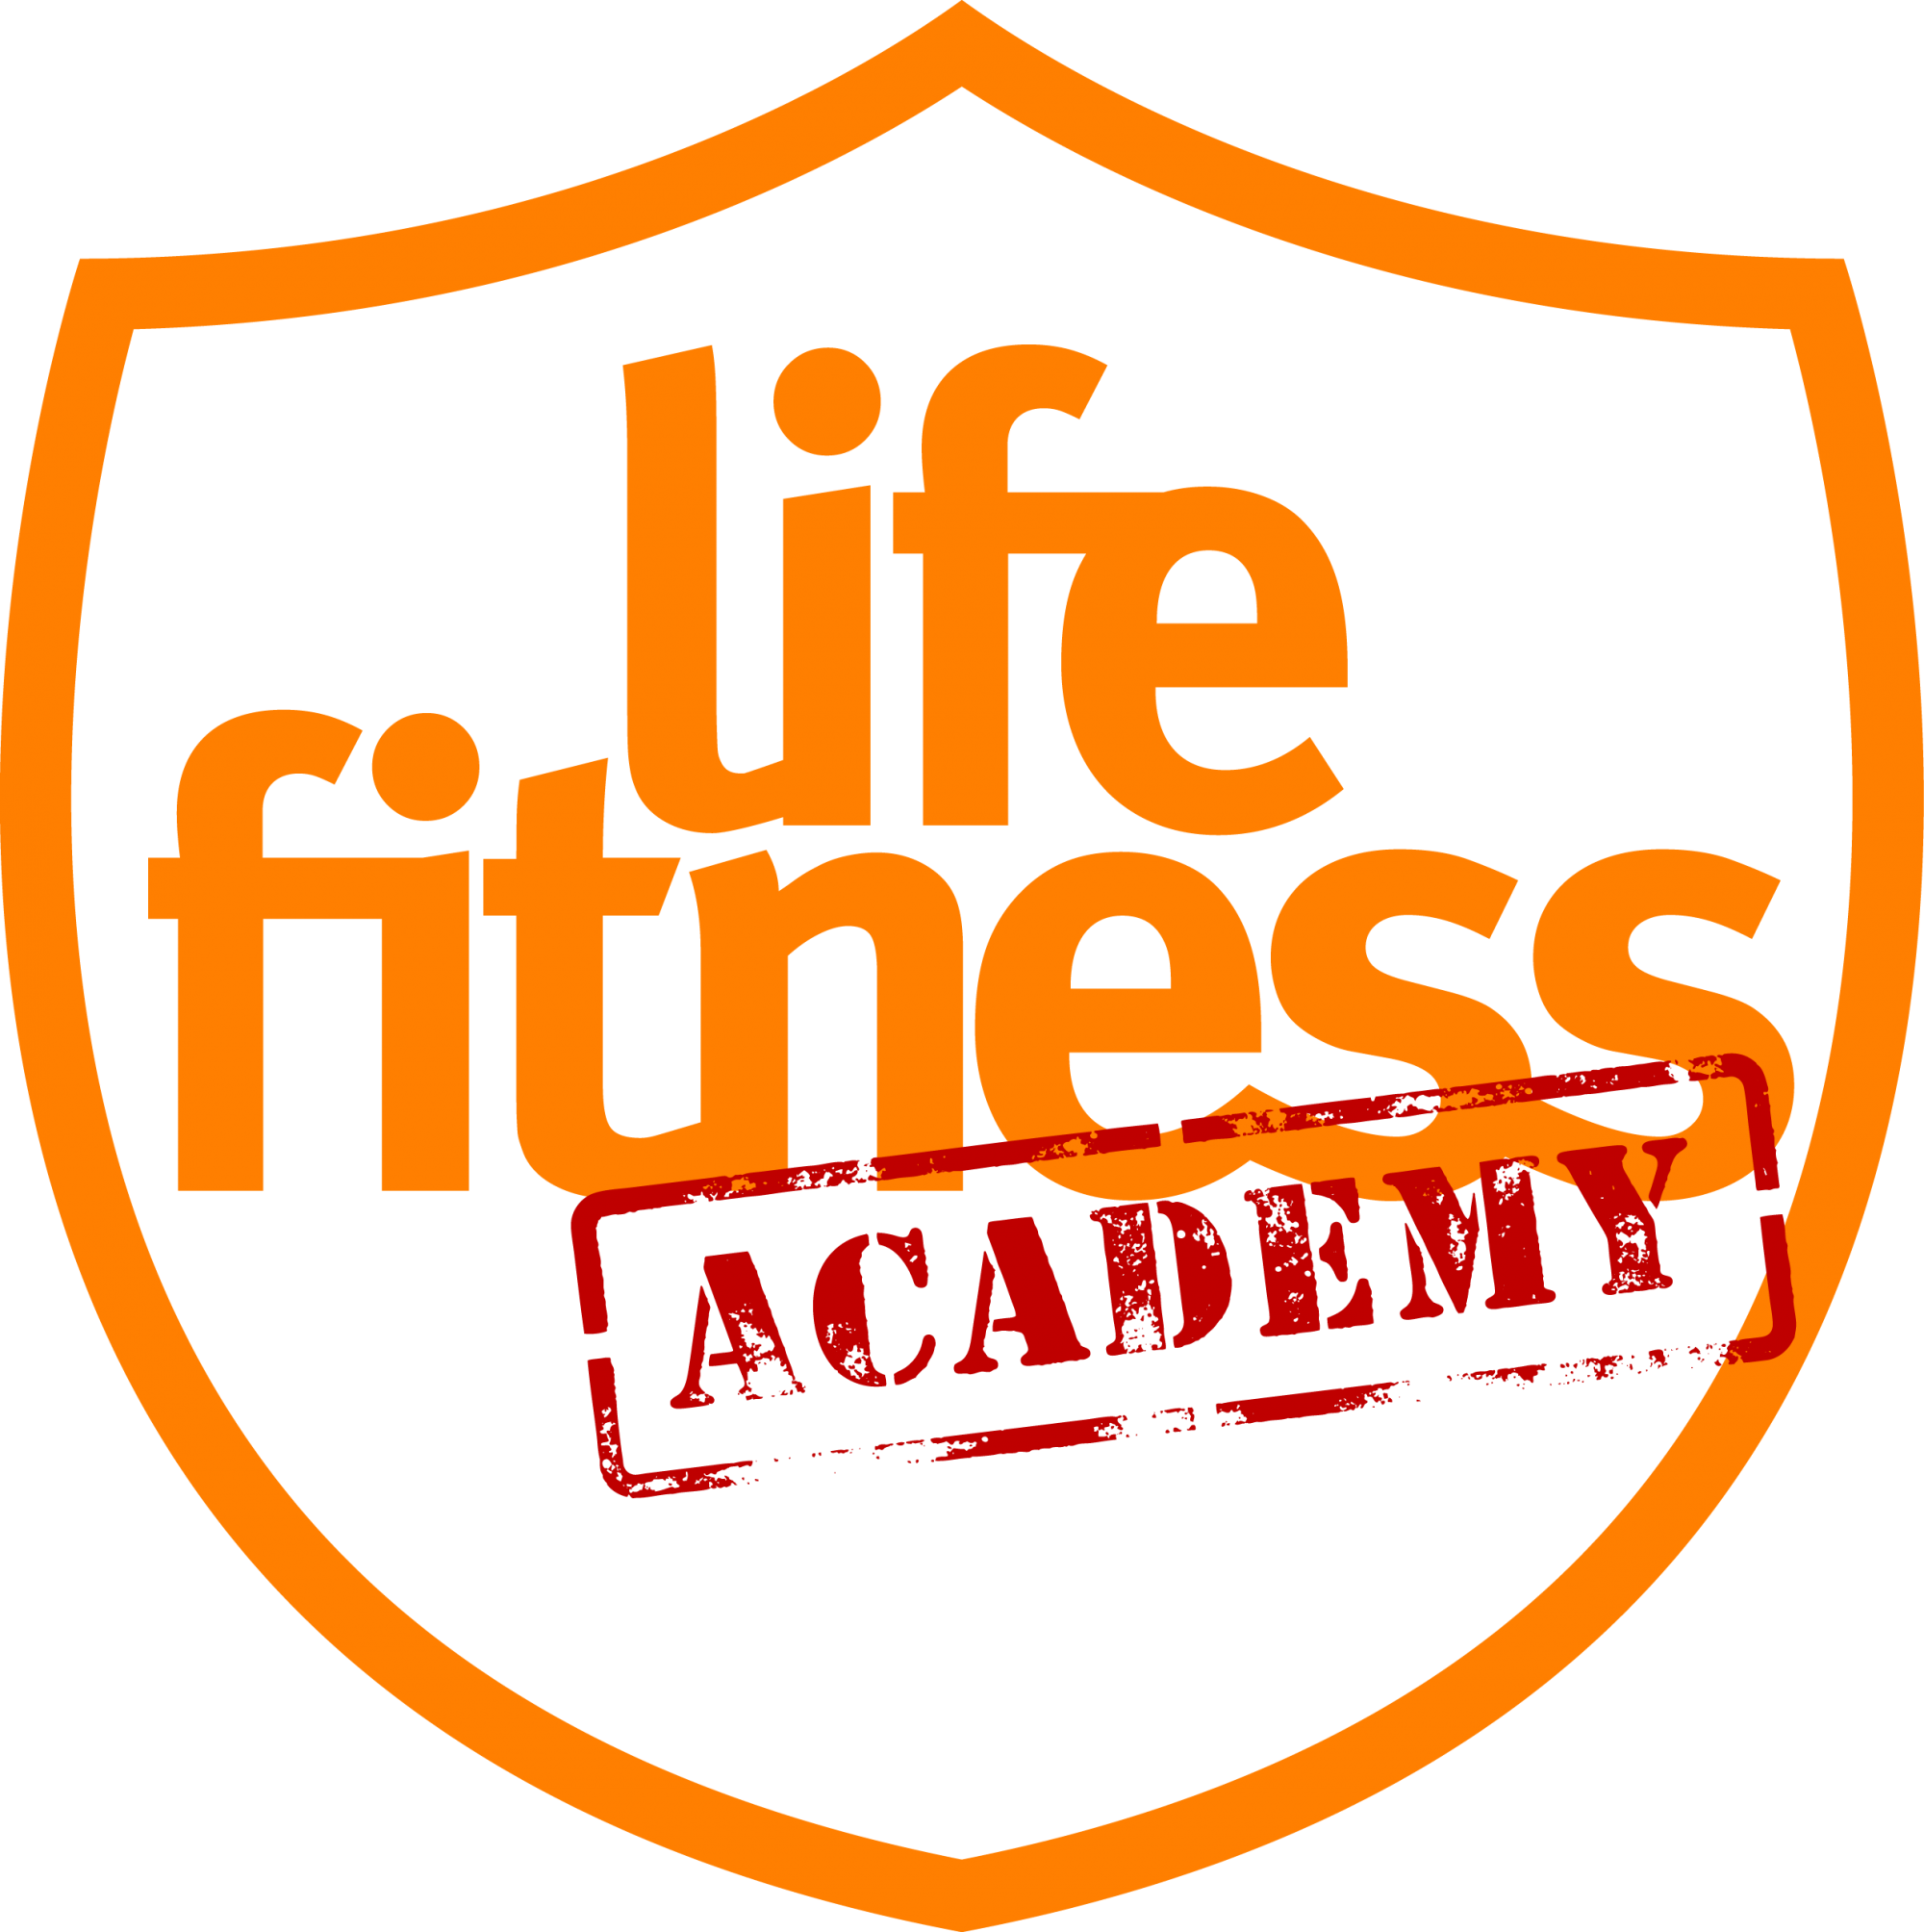 Life fitness logo clipart clip art black and white download Life Fitness Academy — clip art black and white download